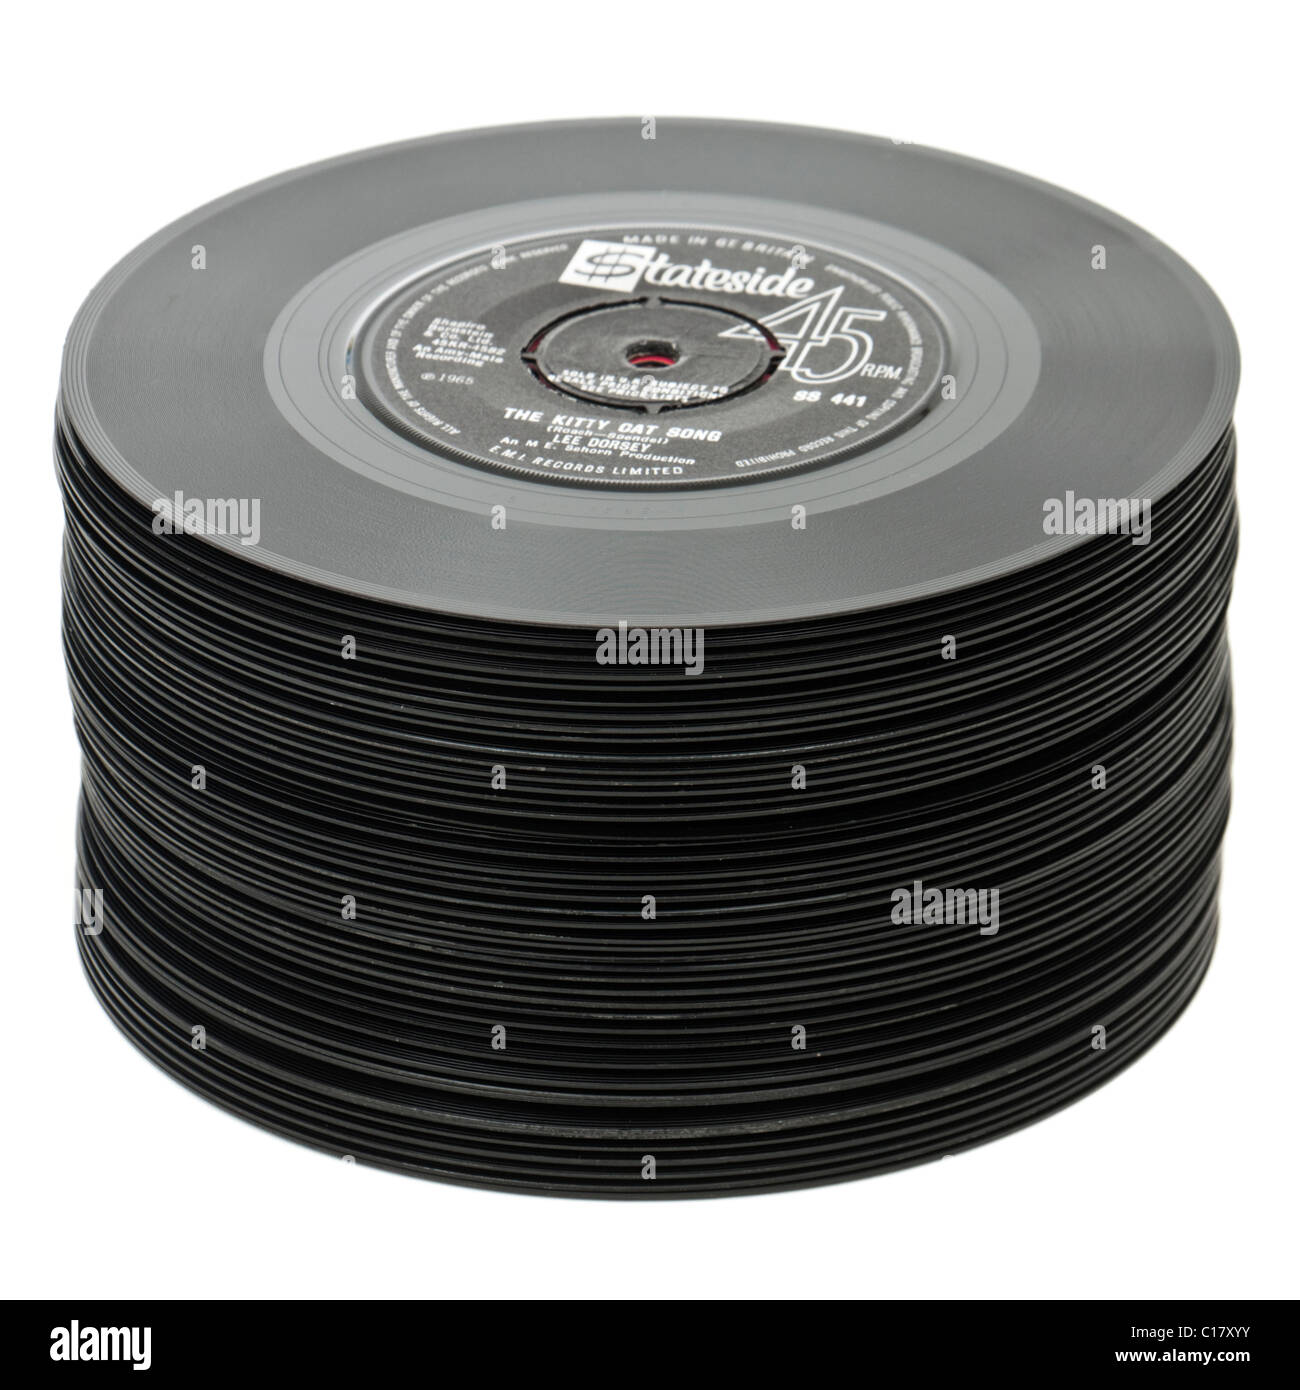 Large pile of vintage 7' vinyl records / singles from the 1950's and 1960's - Stock Image